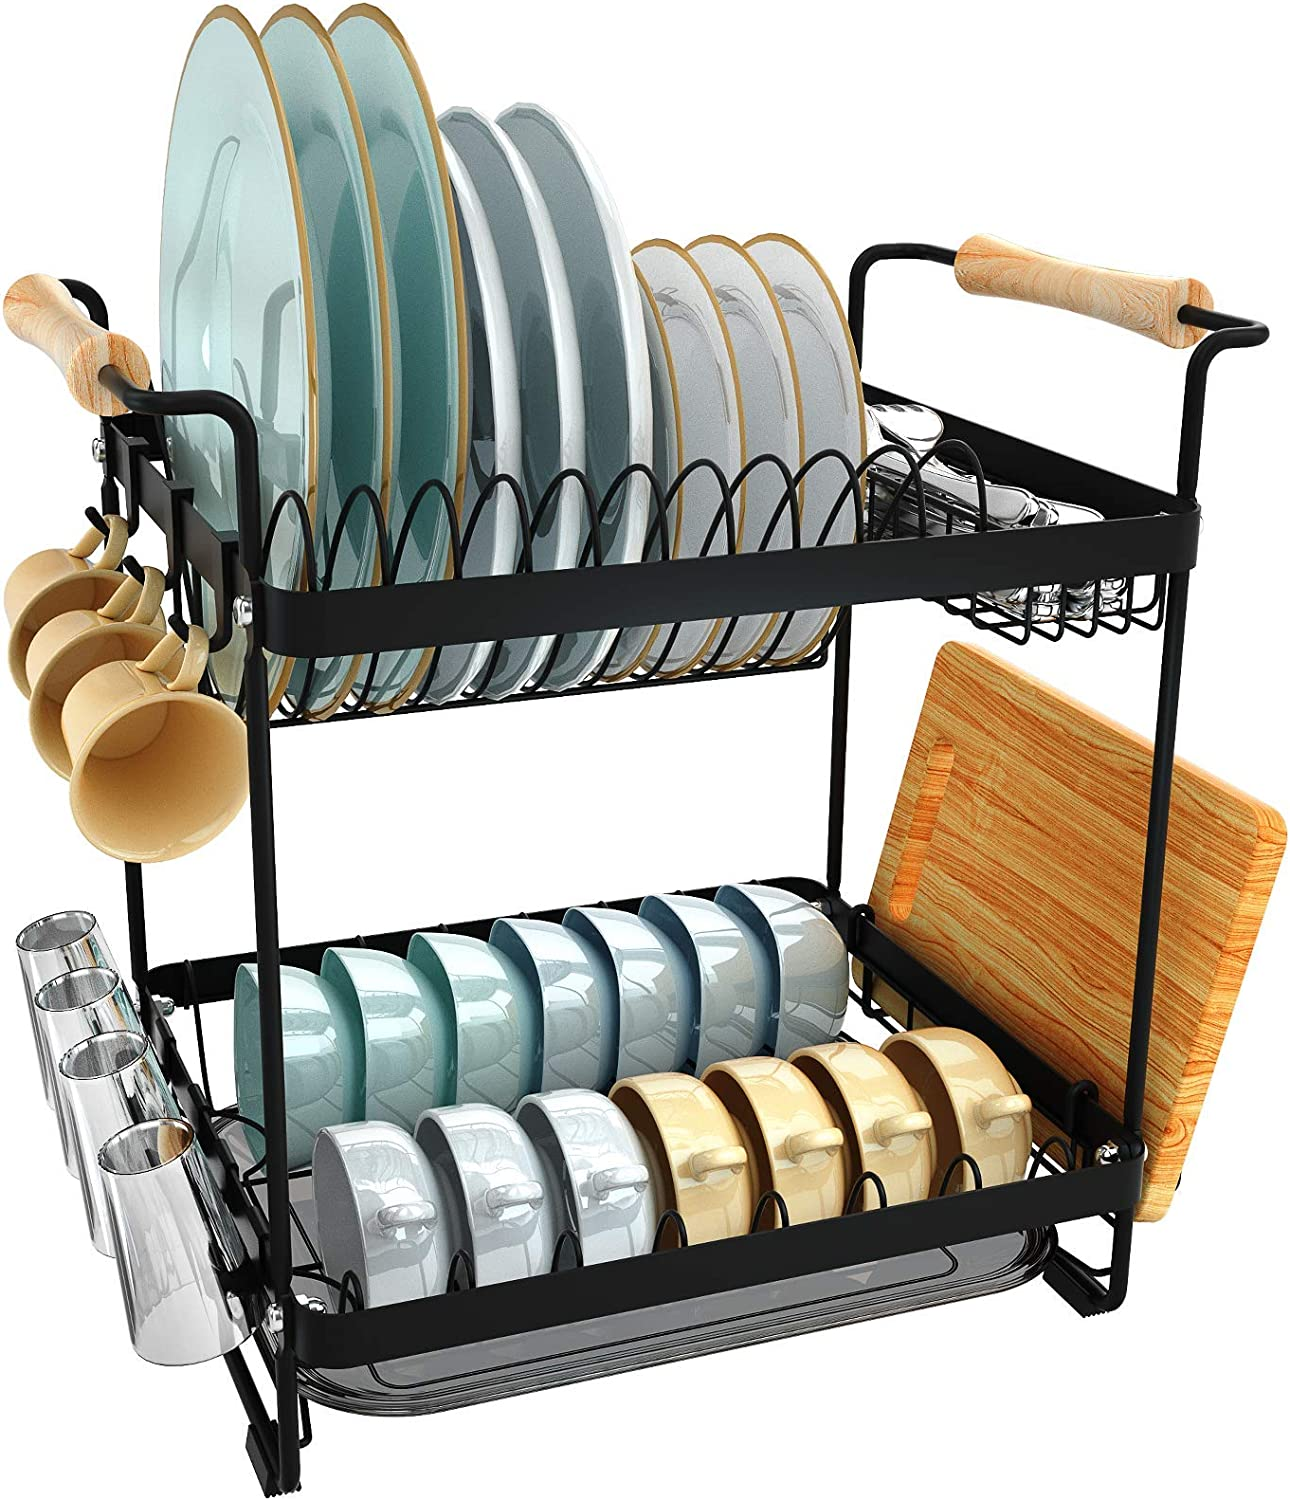 Dish Albuquerque Mall Drying National uniform free shipping Rack JZBRAIN 2 Tier Small Stainless Steel